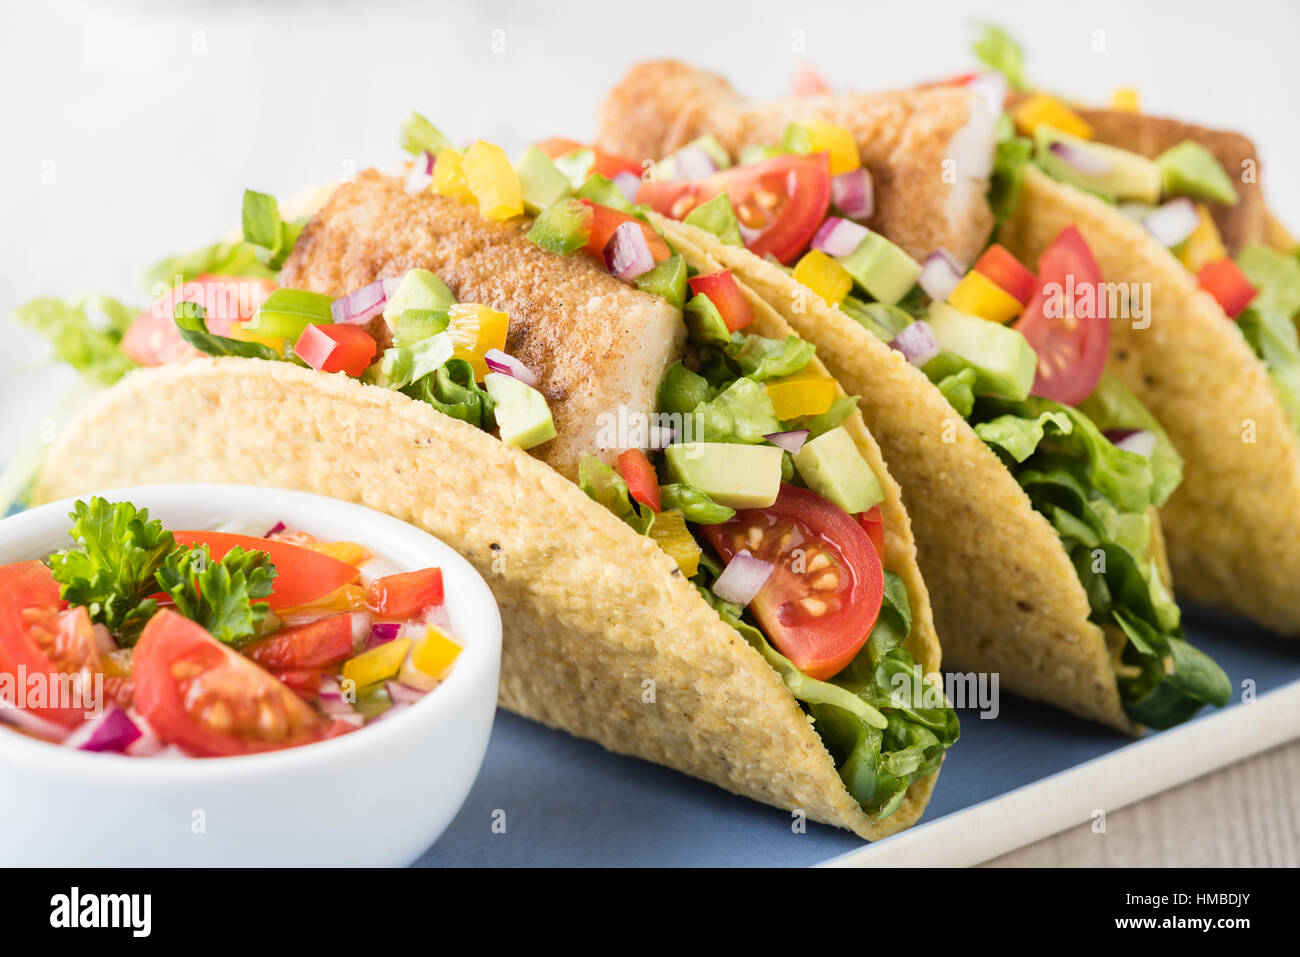 Fish Tacos Shell With Tomato, Beans, Capsicum And Avocado Salsa Stock ...